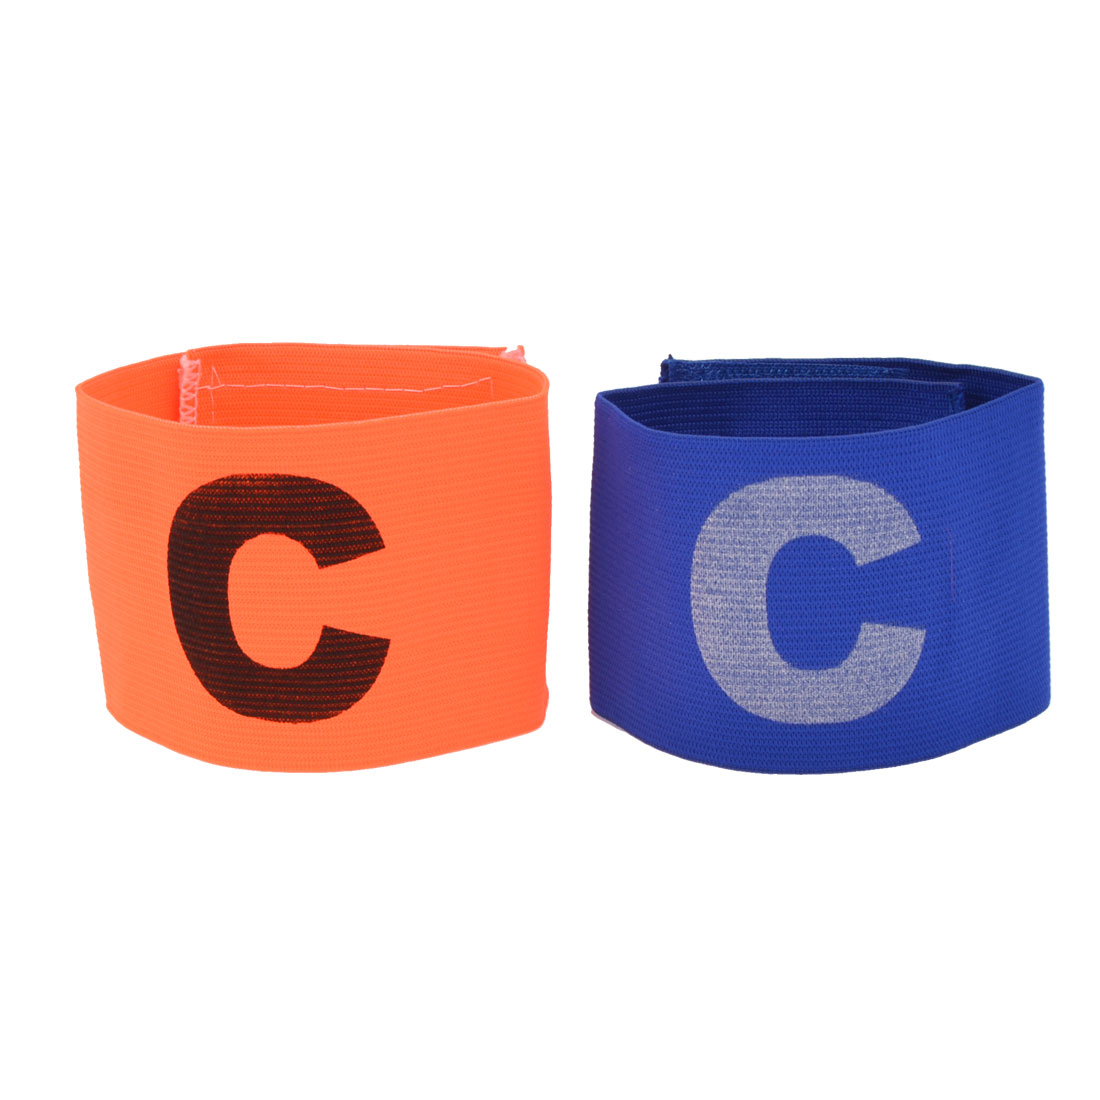 Hook Loop Closure Orange Blue Stretchy Football Captain Armband Badge 2 PCS